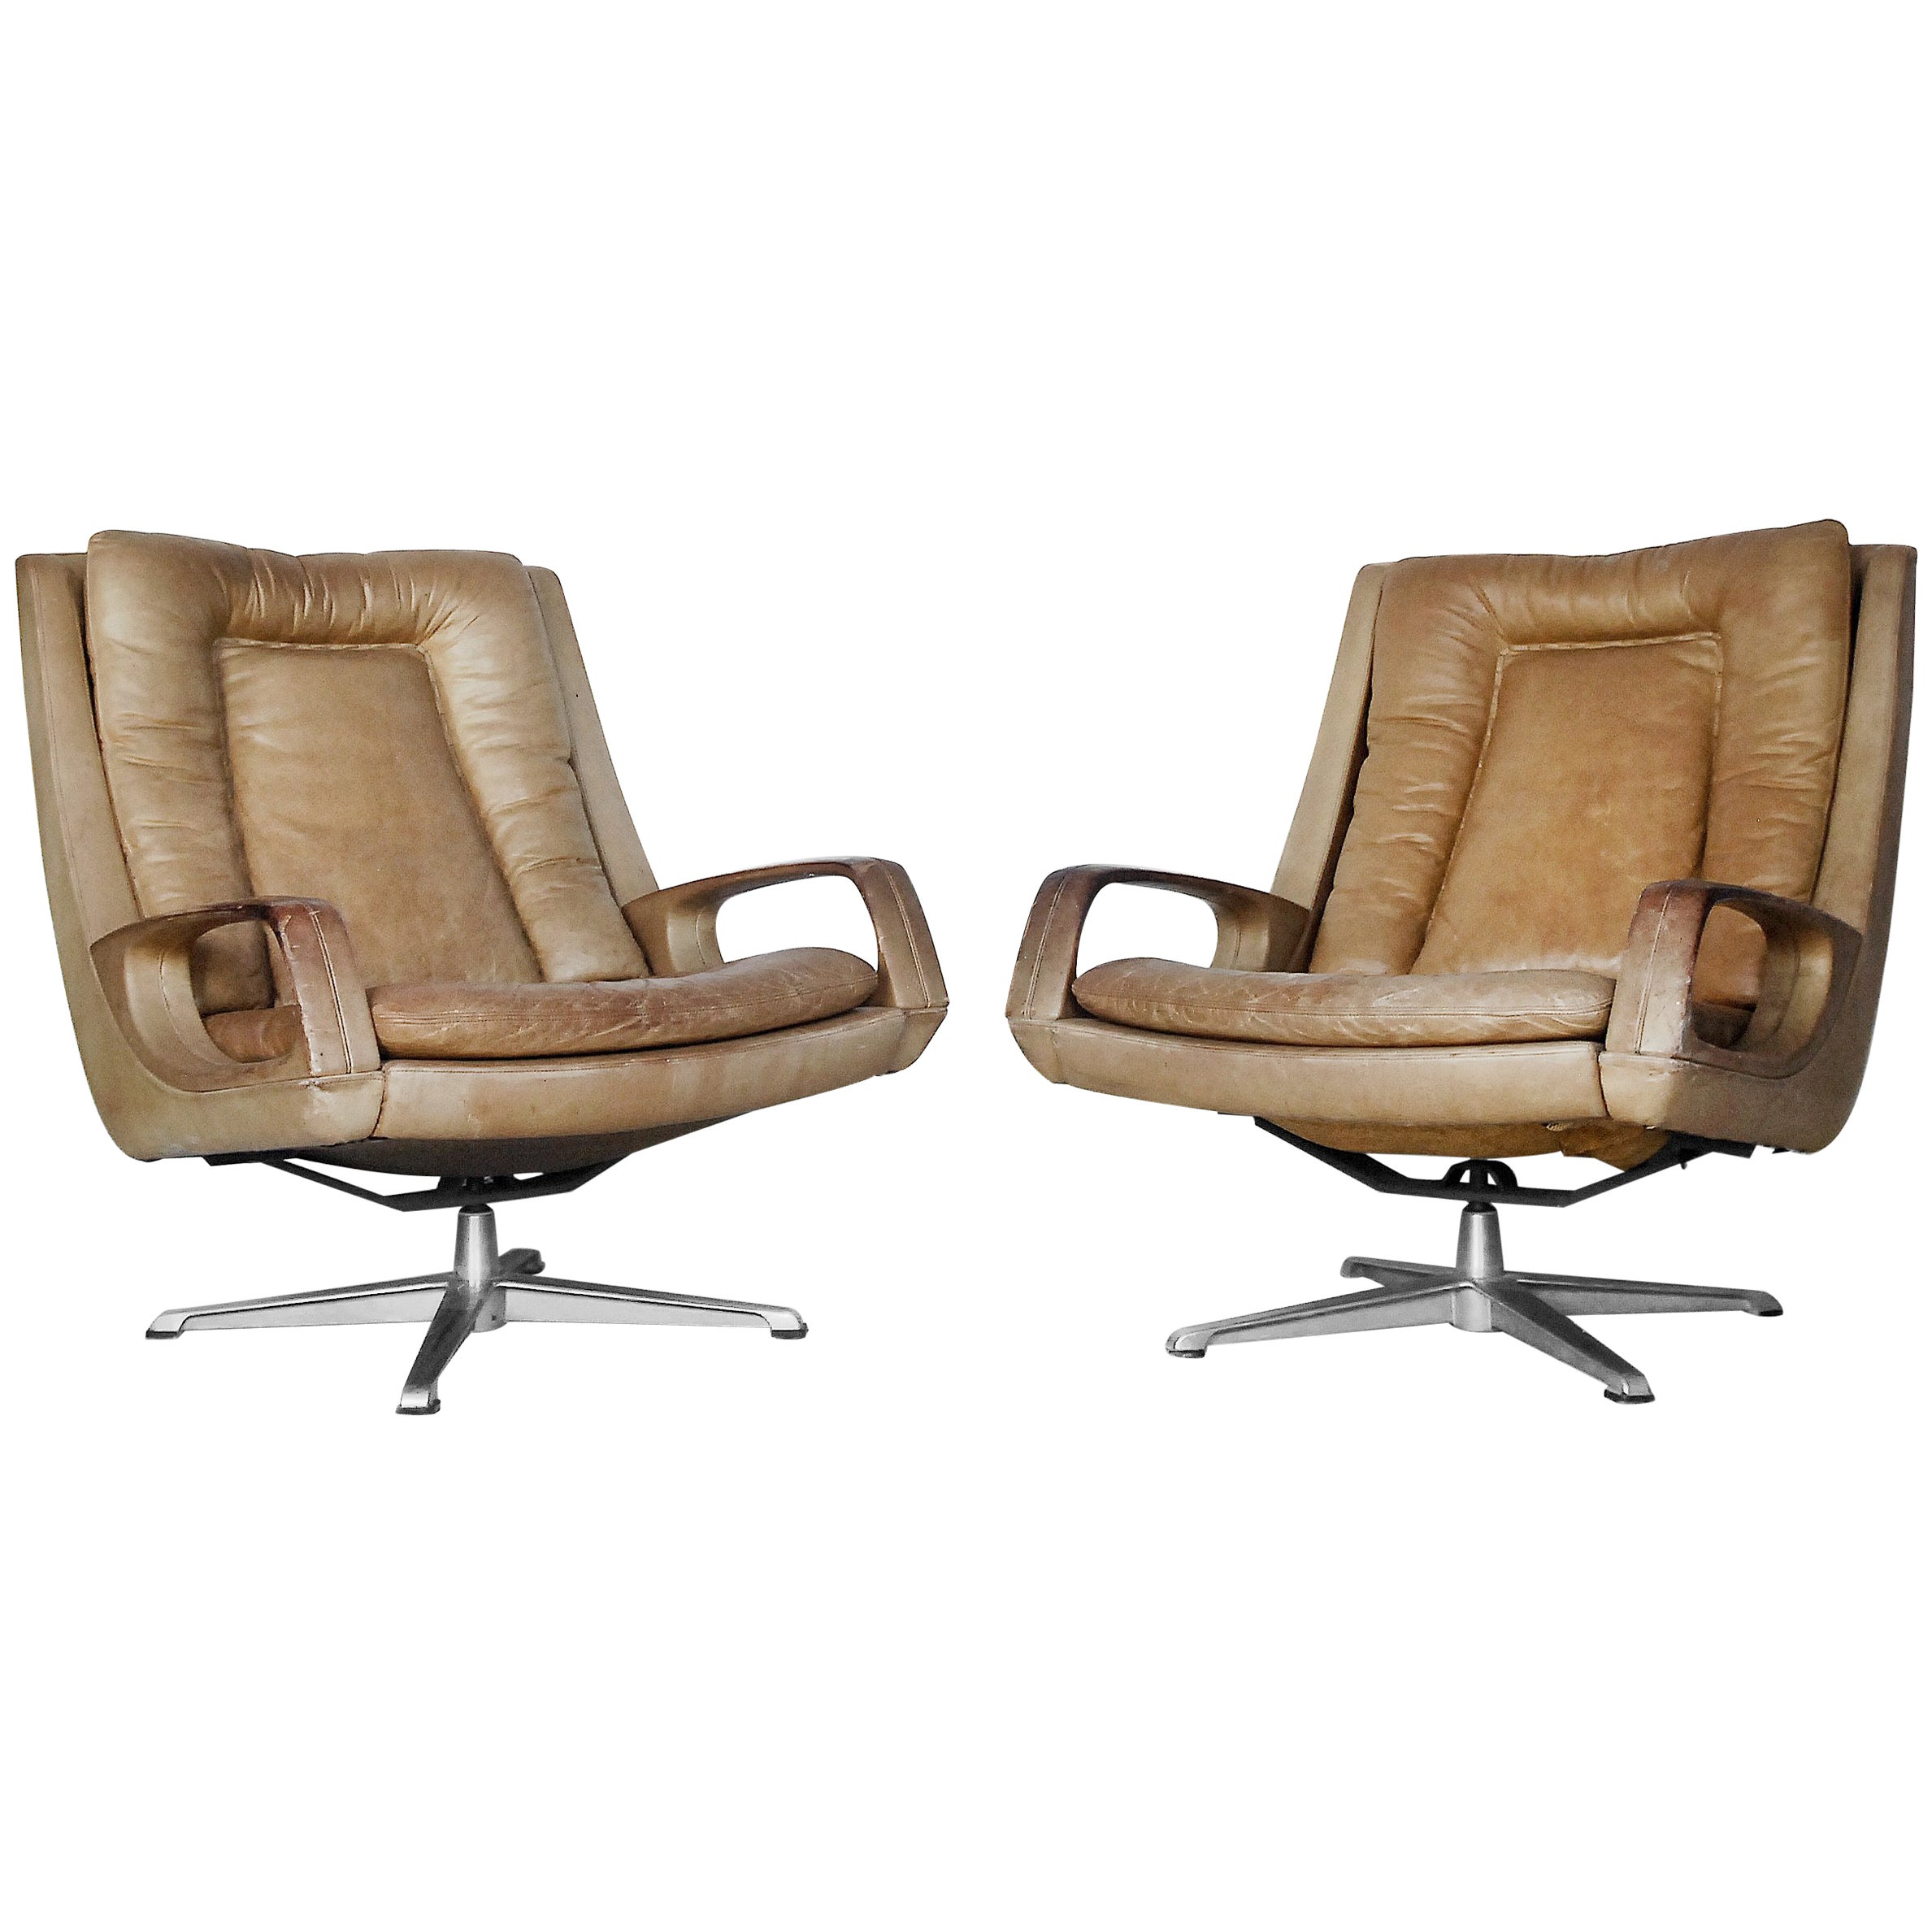 Swivel Leather Chairs By Carl Straub 1950s Set Of Two For At 1stdibs